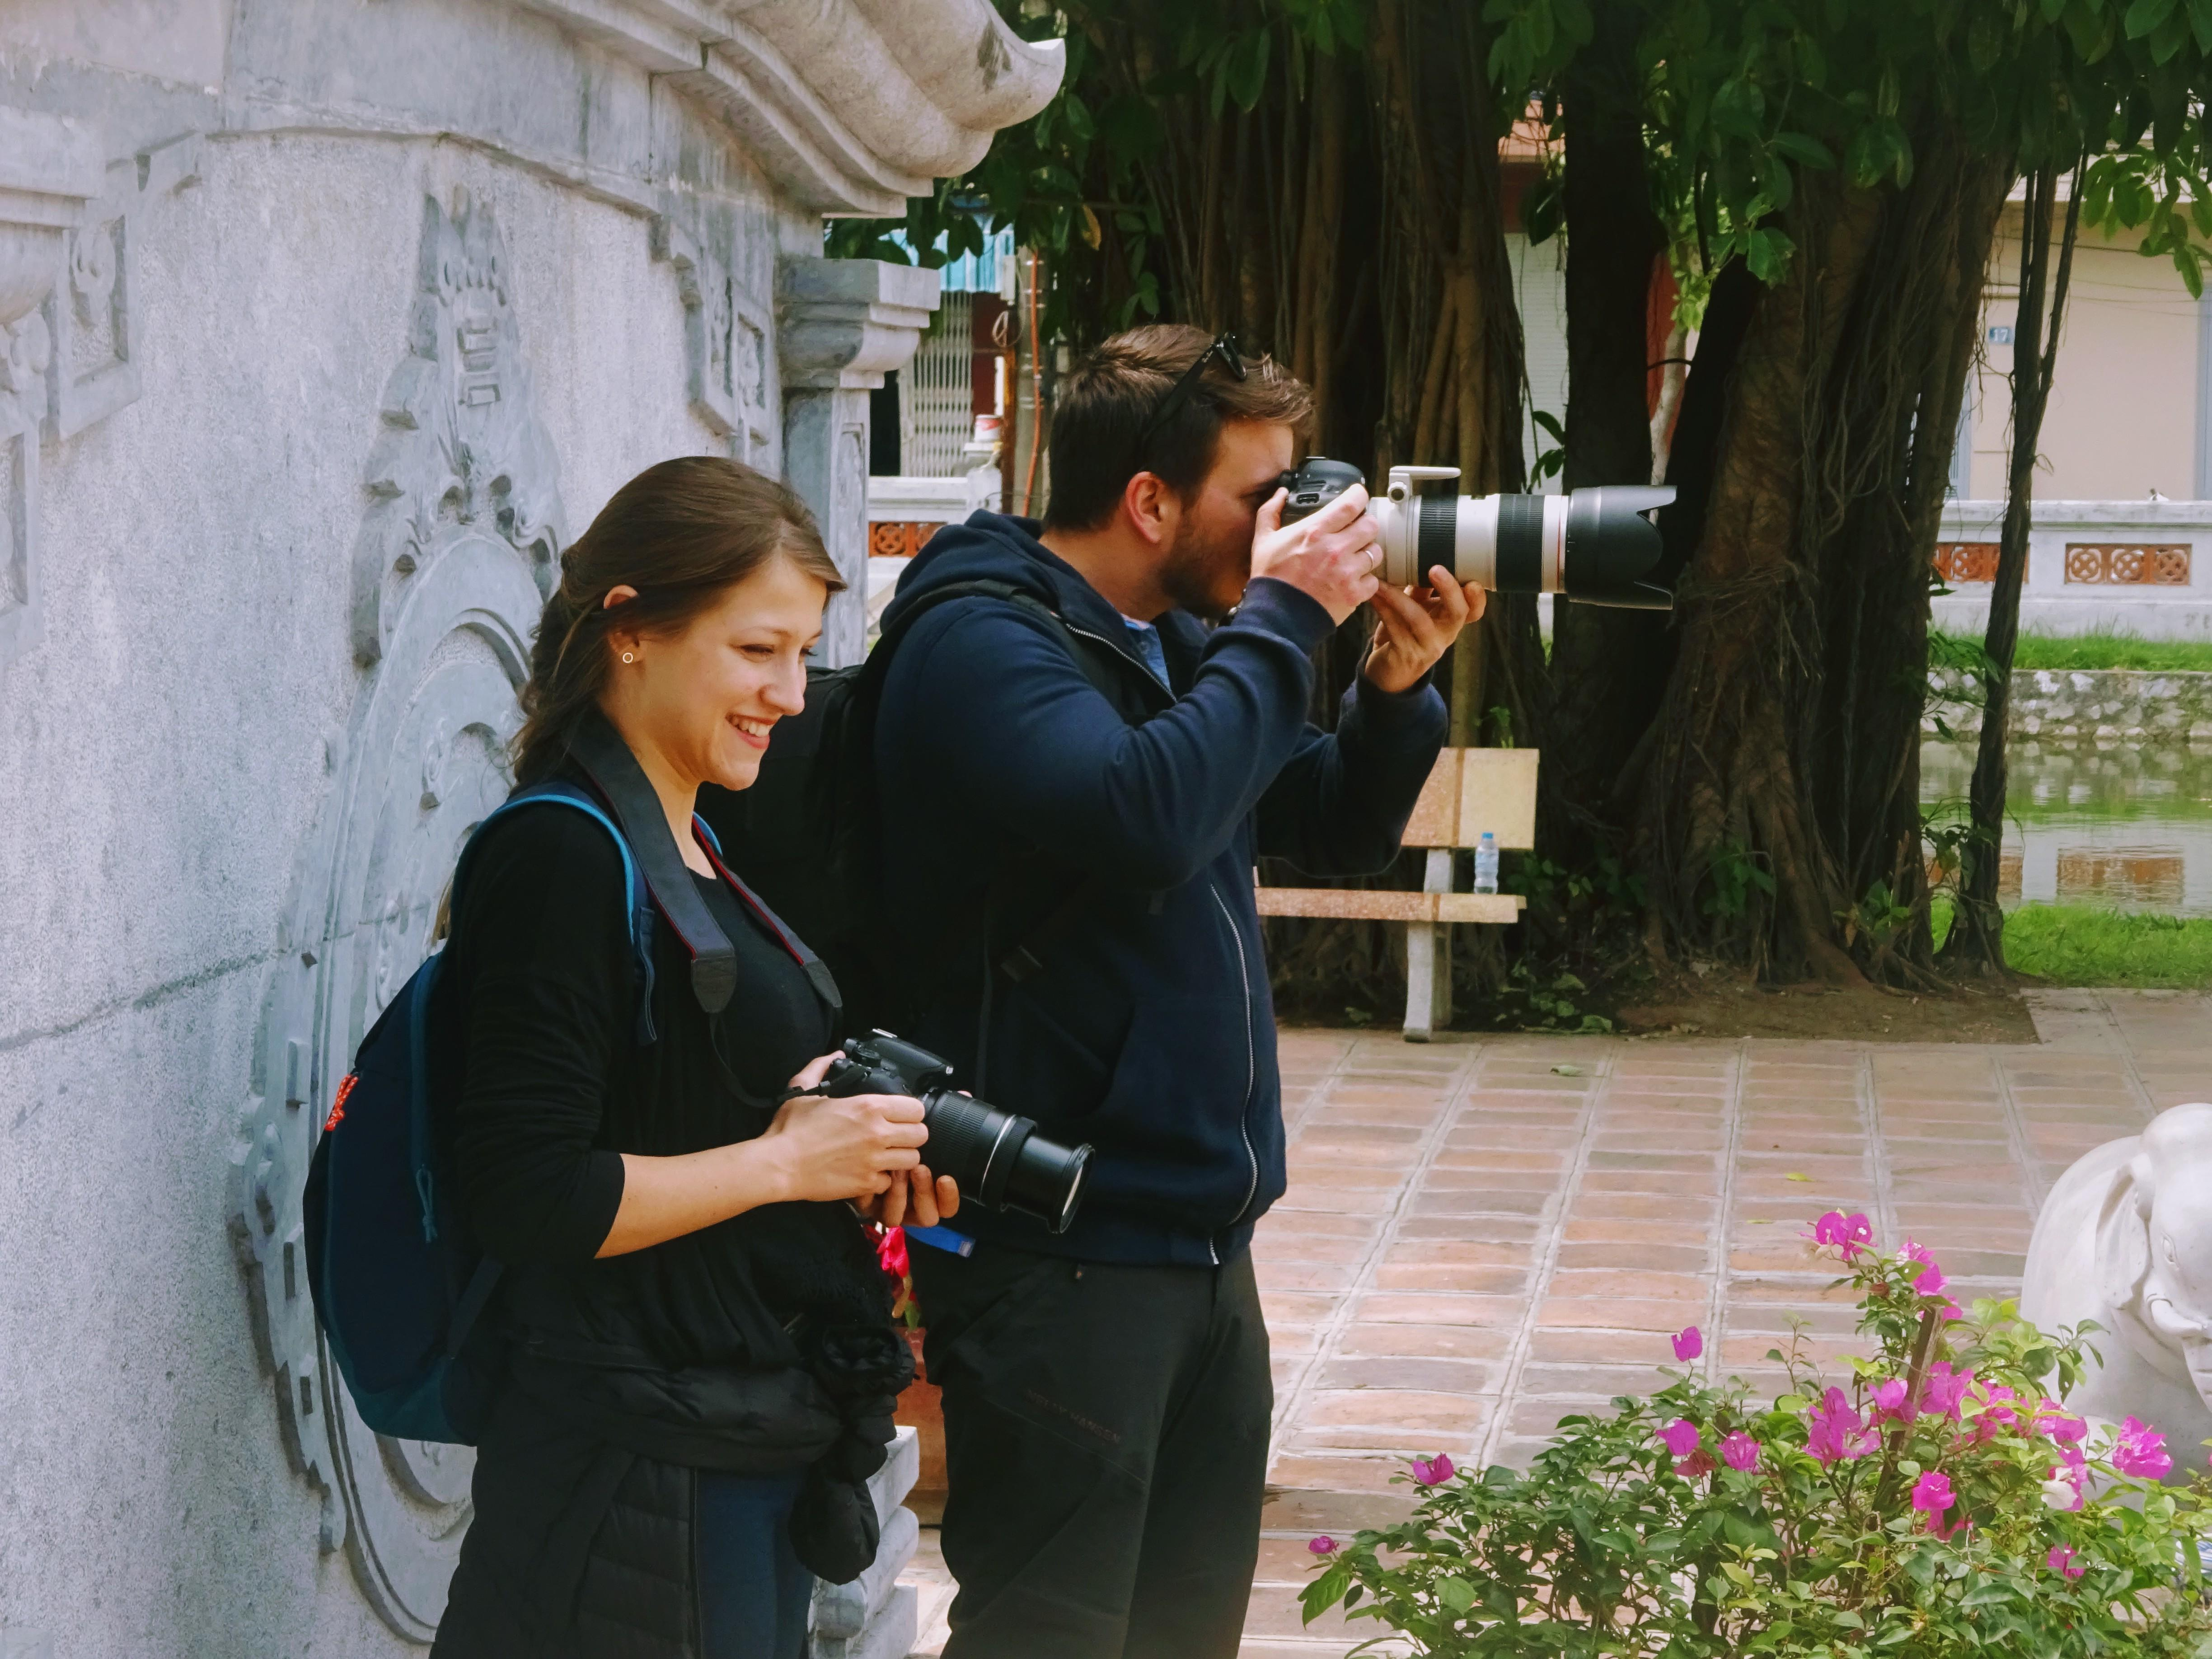 Interns take pictures during a social events in Vietnam